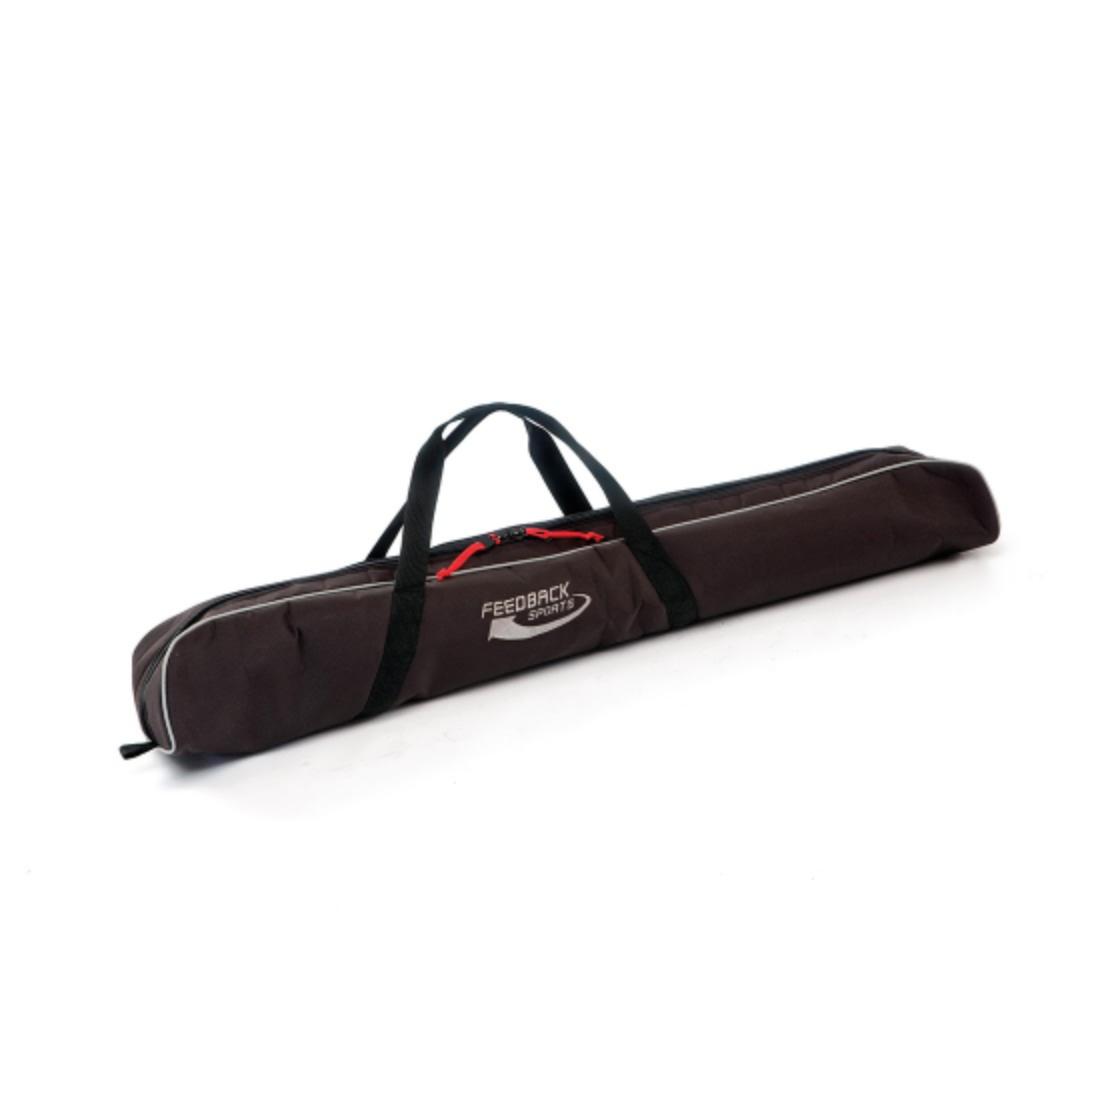 padded travel bag